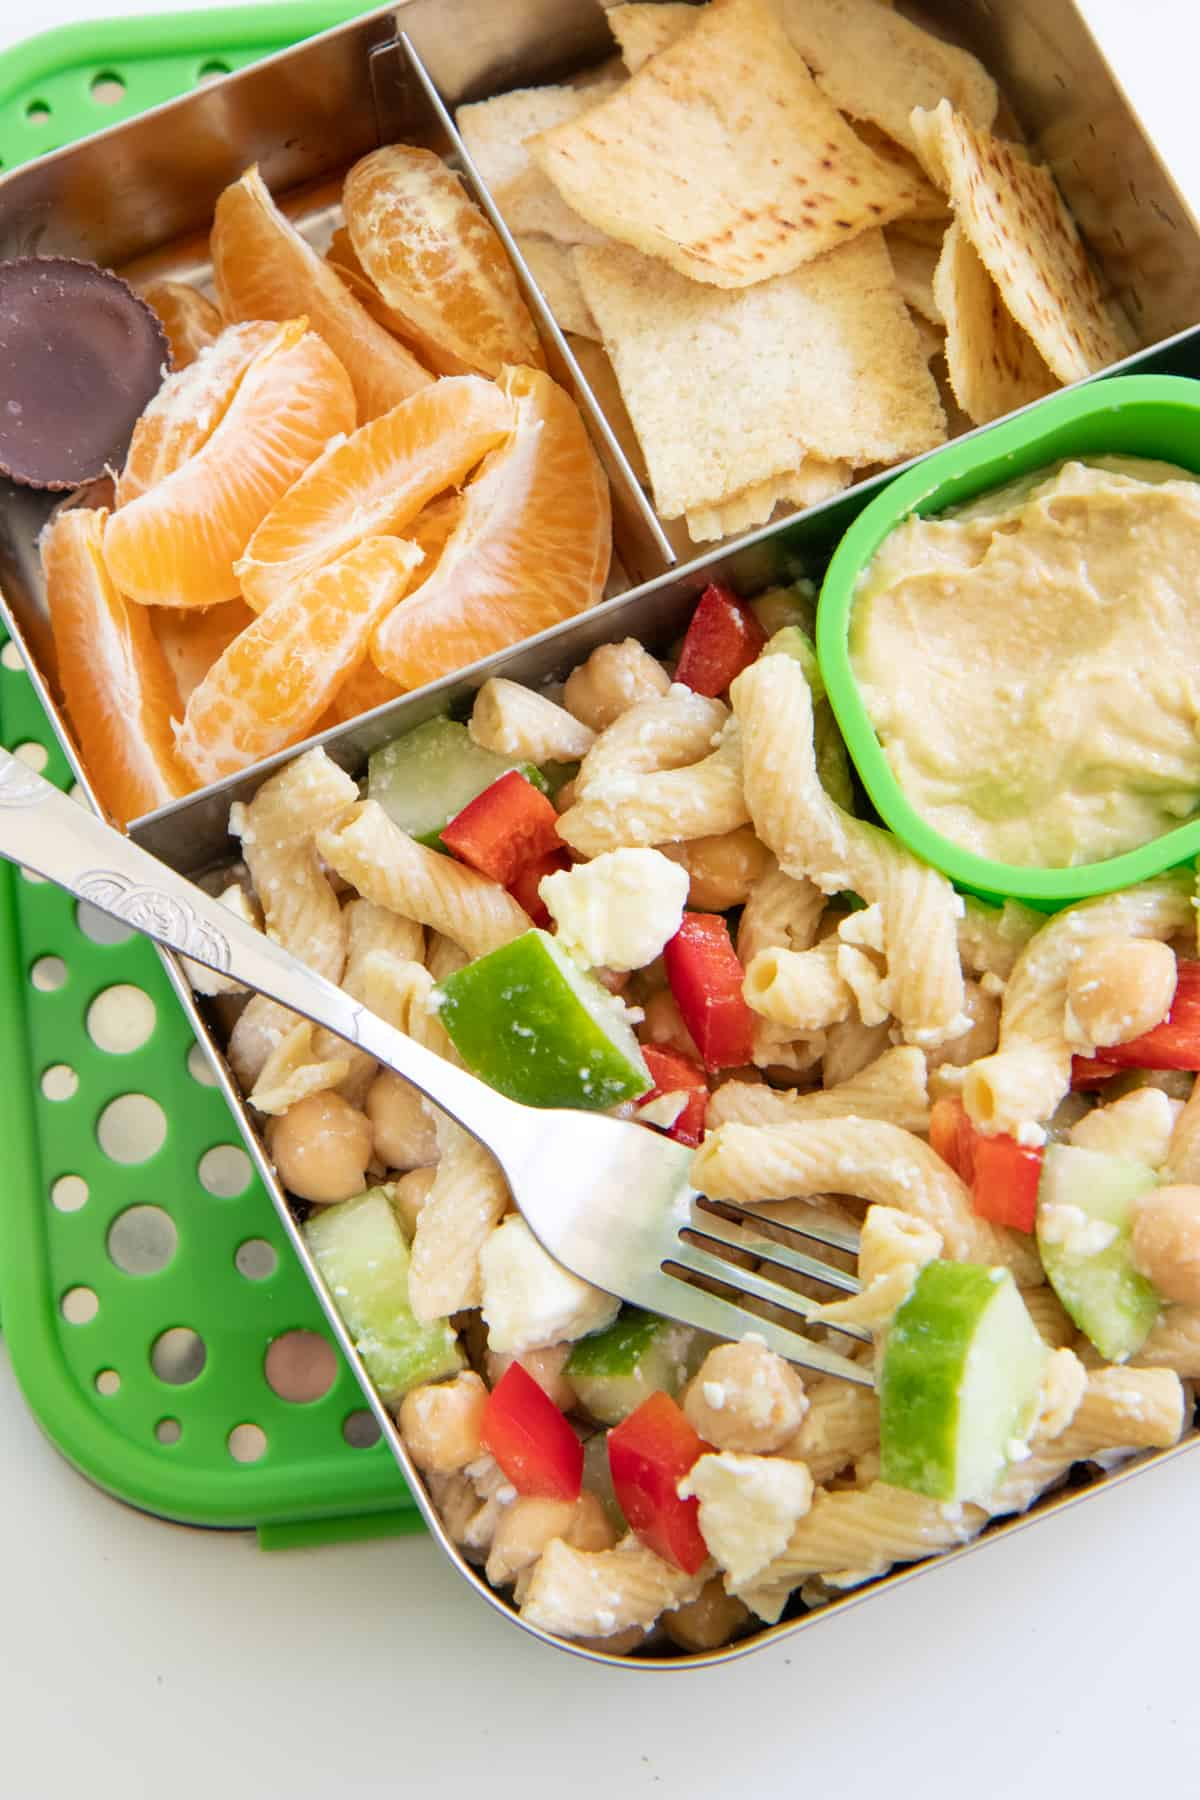 Stainless steel lunchbox with pasta salad, orange slices, and pita chips for a school lunch.